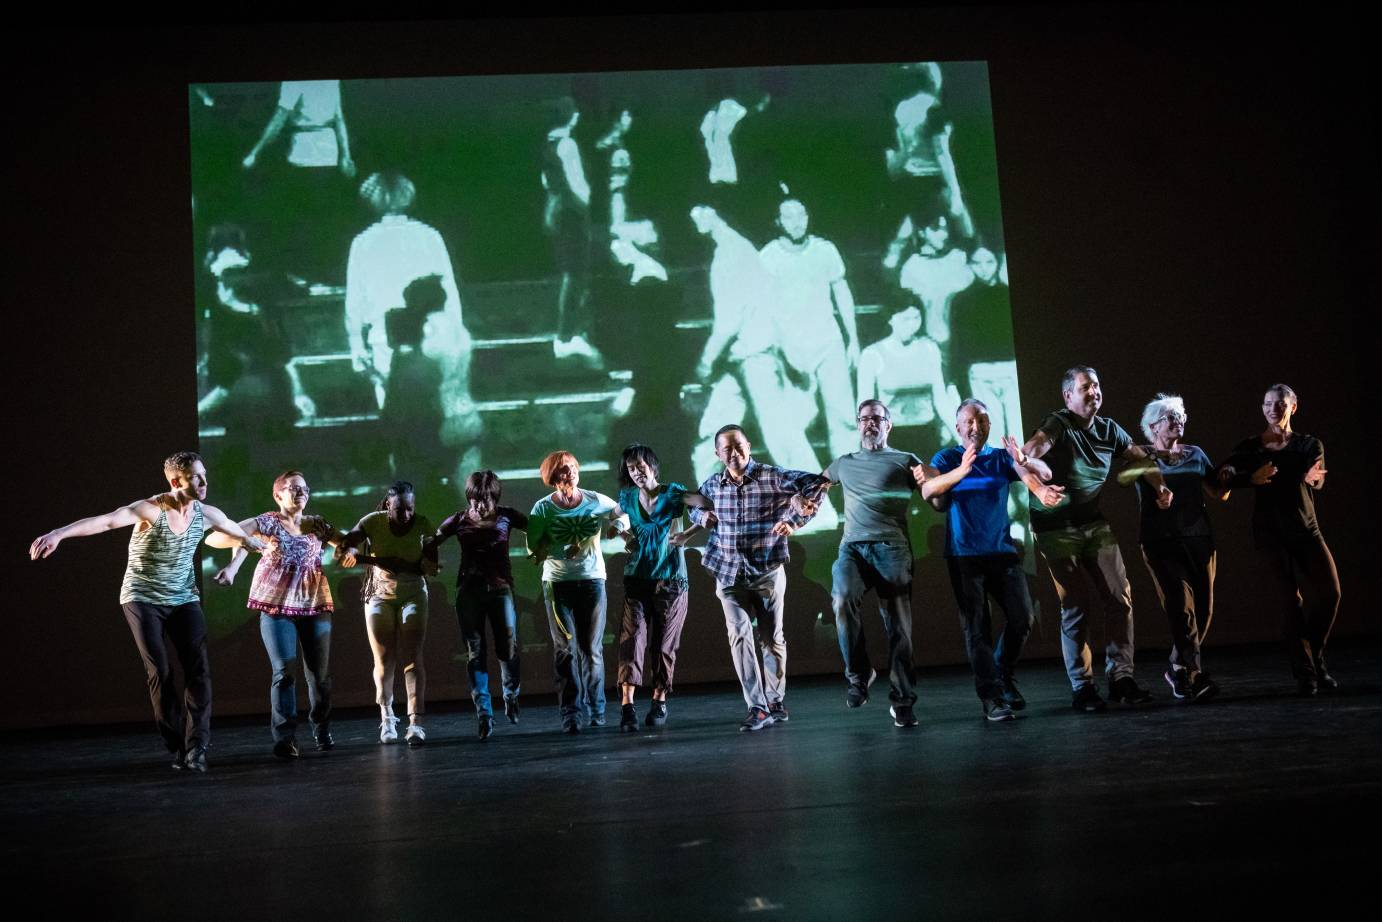 A grainy archival video of Twyla Tharp dancers is projected on stage. In front of it, a group of dancers and volunteers stand in a straight line with their arms linked.